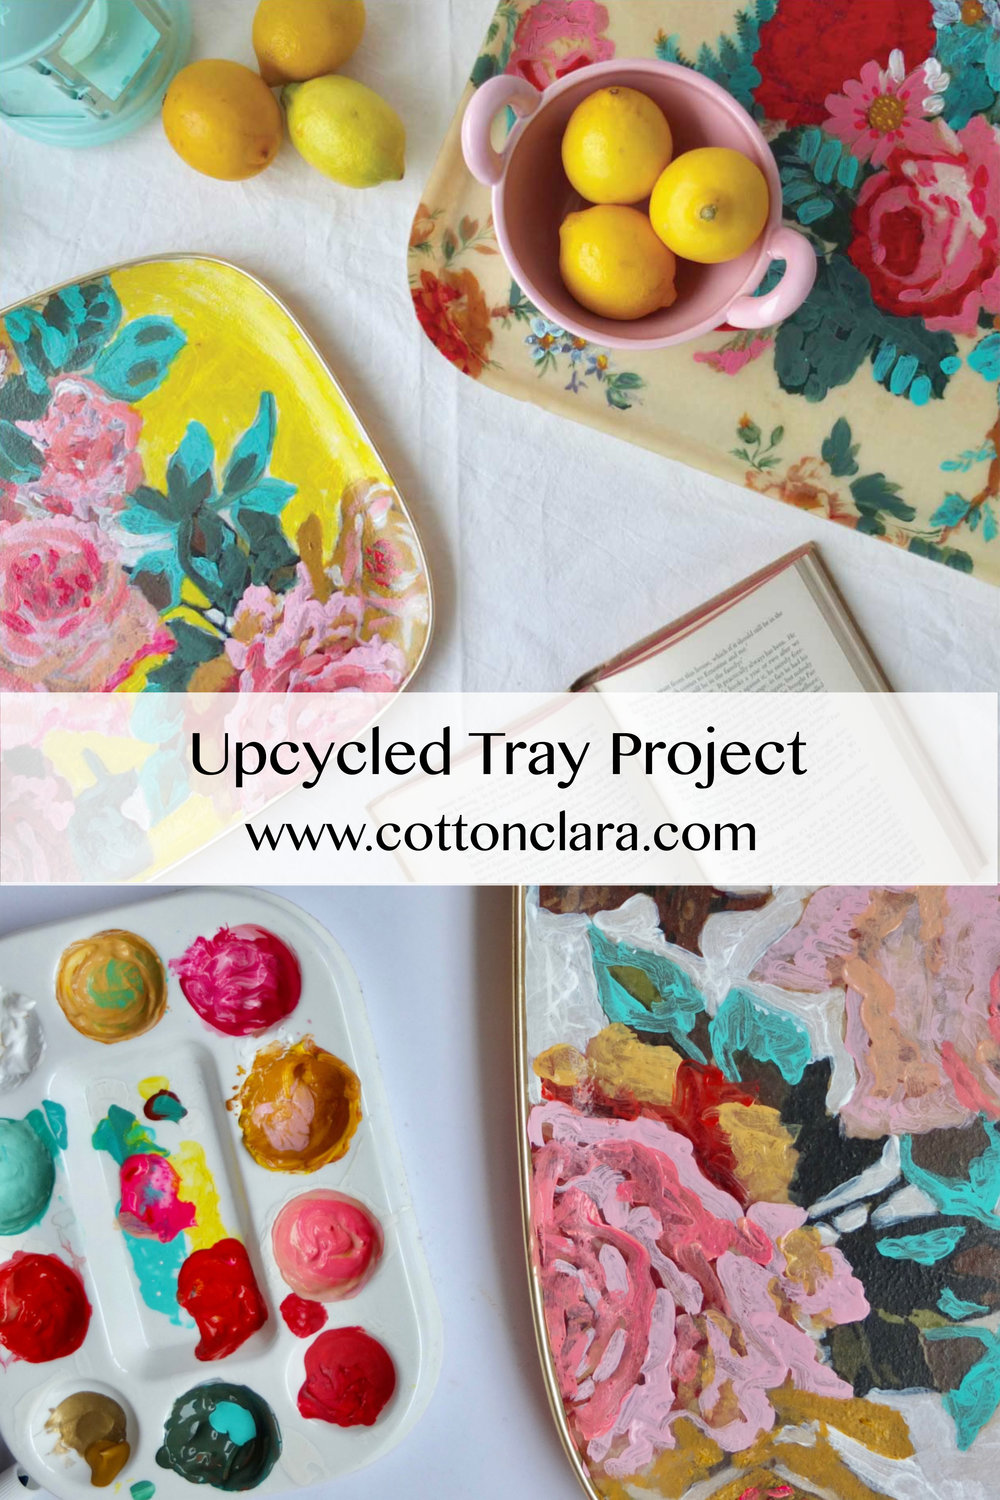 Upcycled Tray Project by Cotton Clara